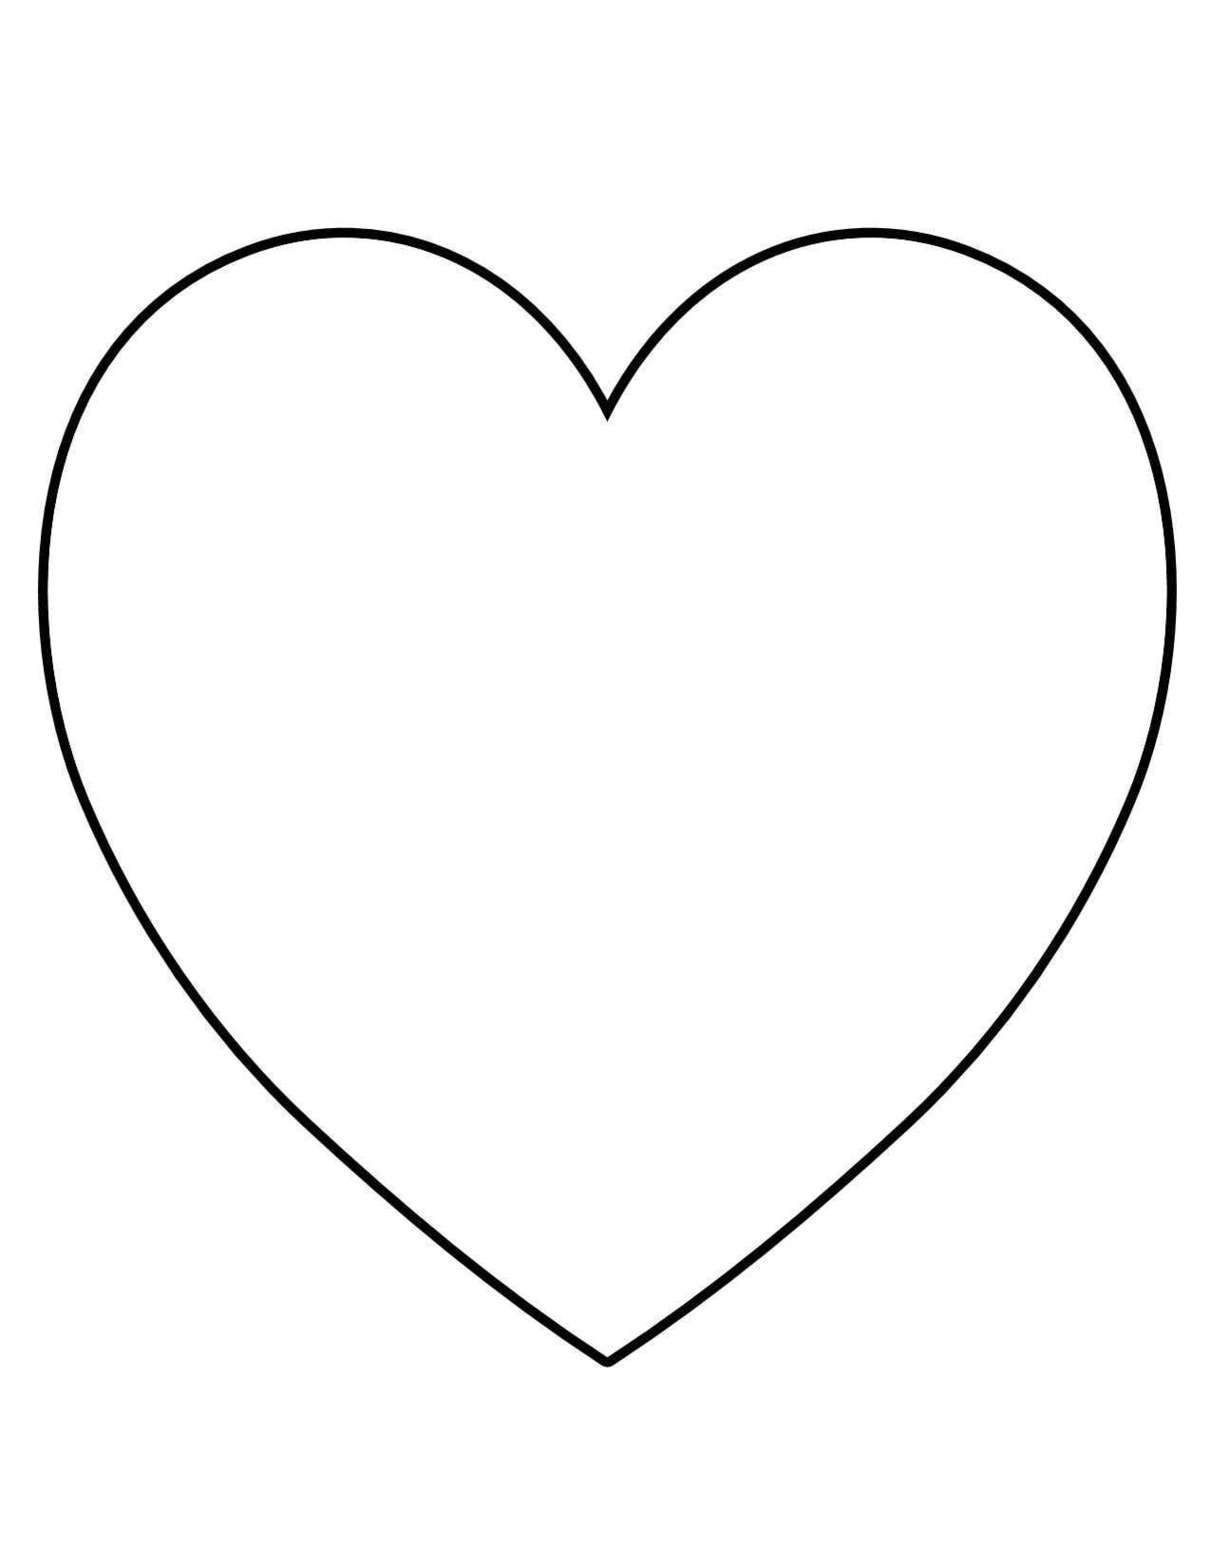 Valentines day geometric heart clipart bw.